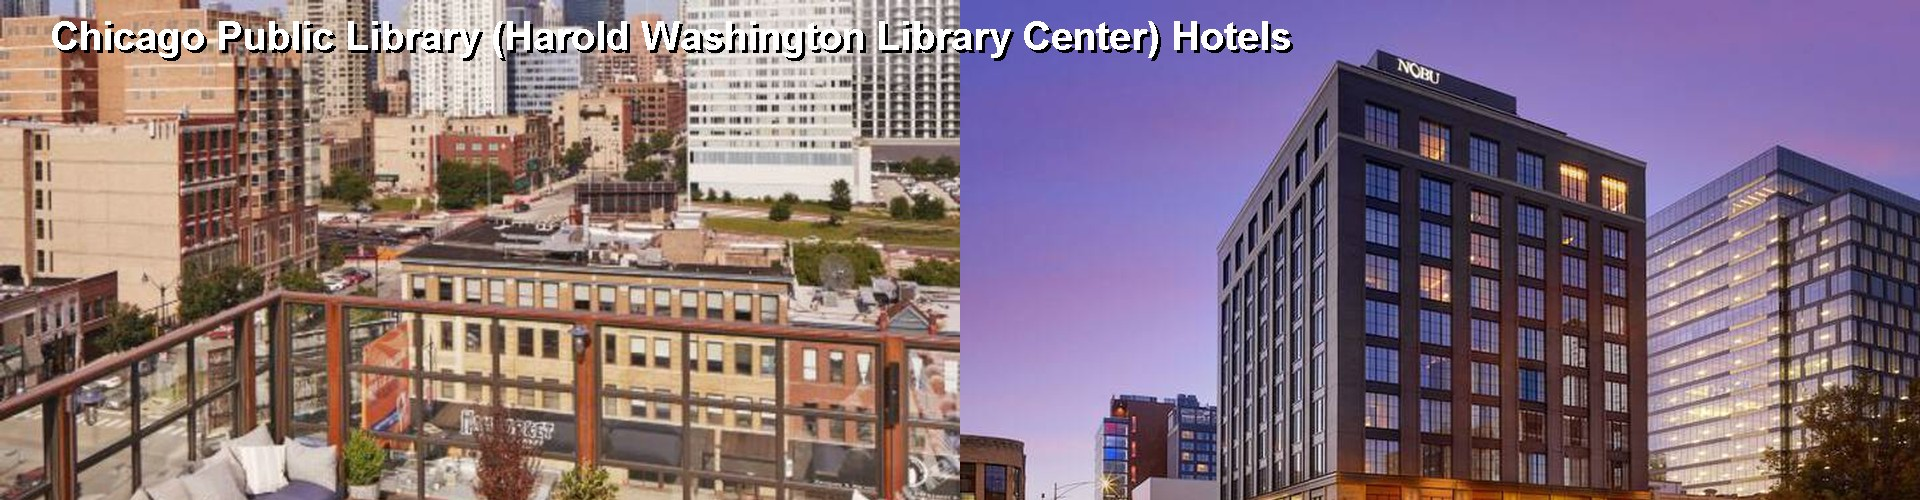 5 Best Hotels near Chicago Public Library (Harold Washington Library Center)